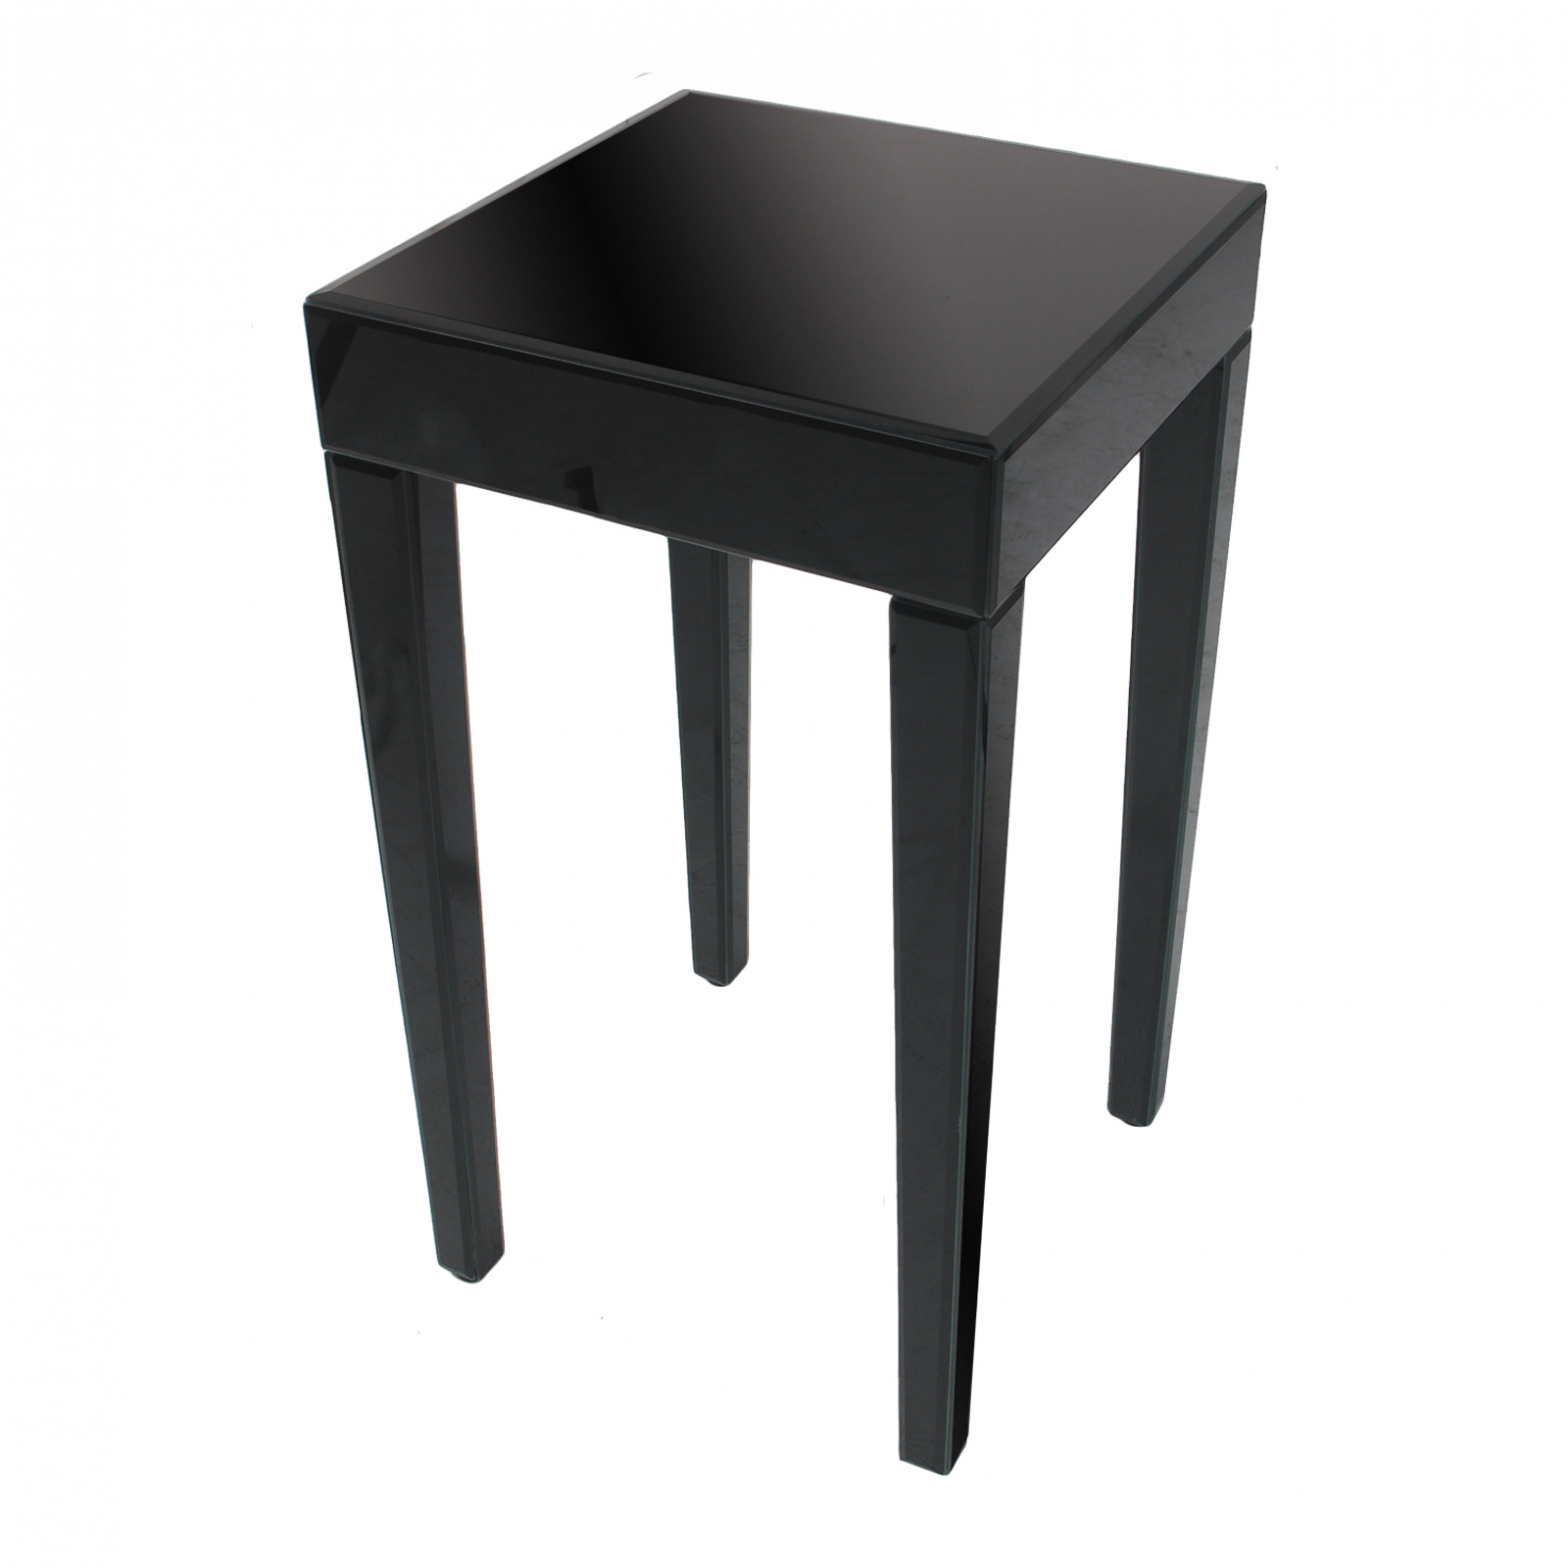 furniture square black side table with four wooden legs pertaining small accent wood beach outdoor ideas diy canadian tire patio cherry coffee tables bar style extra console